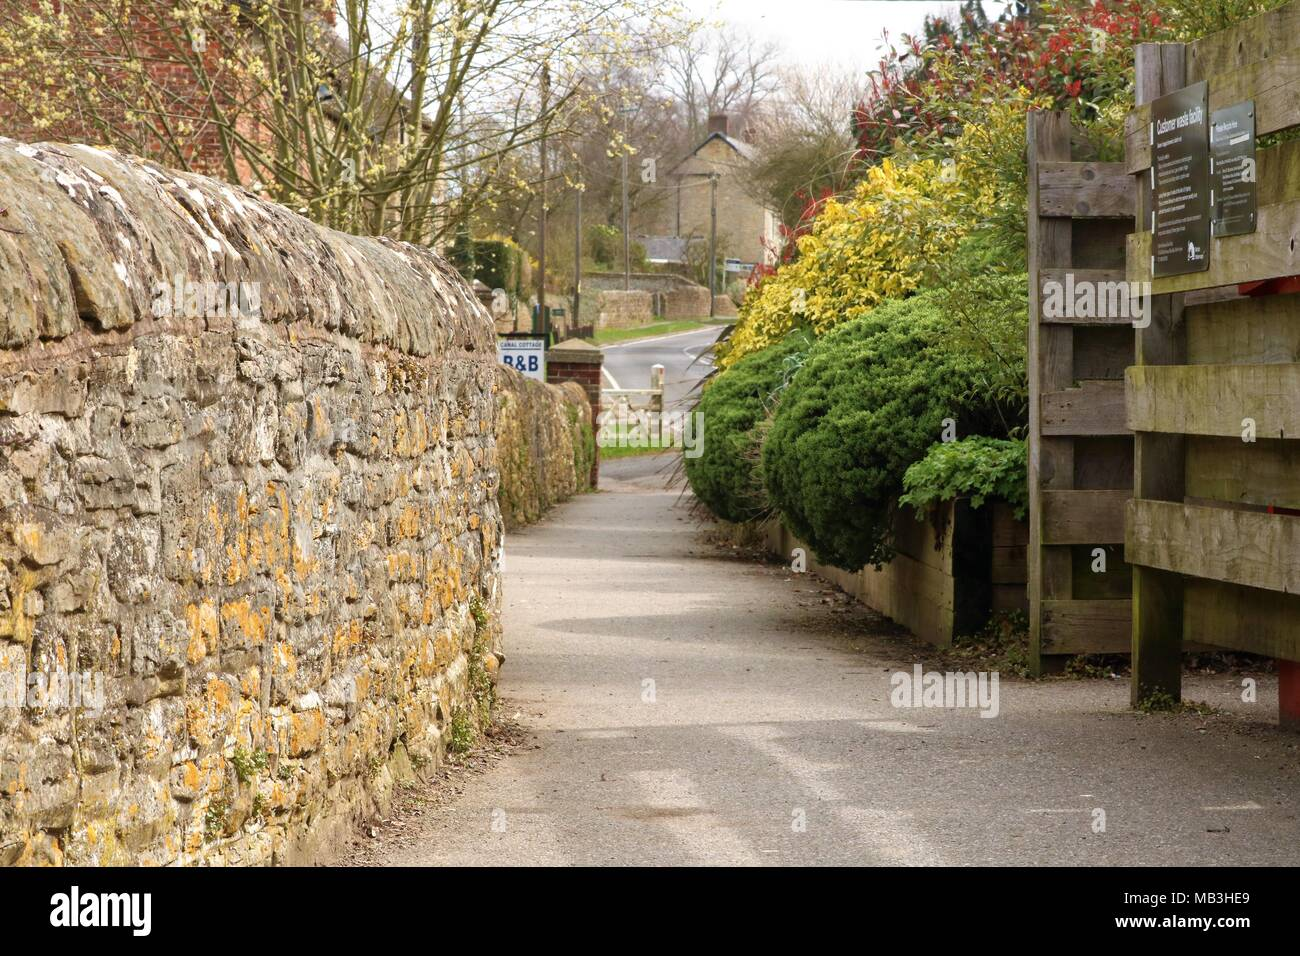 English quaint idyllic village walk in Oxfordshire, UK with stone wall, trees and view of road in the distance - Stock Image